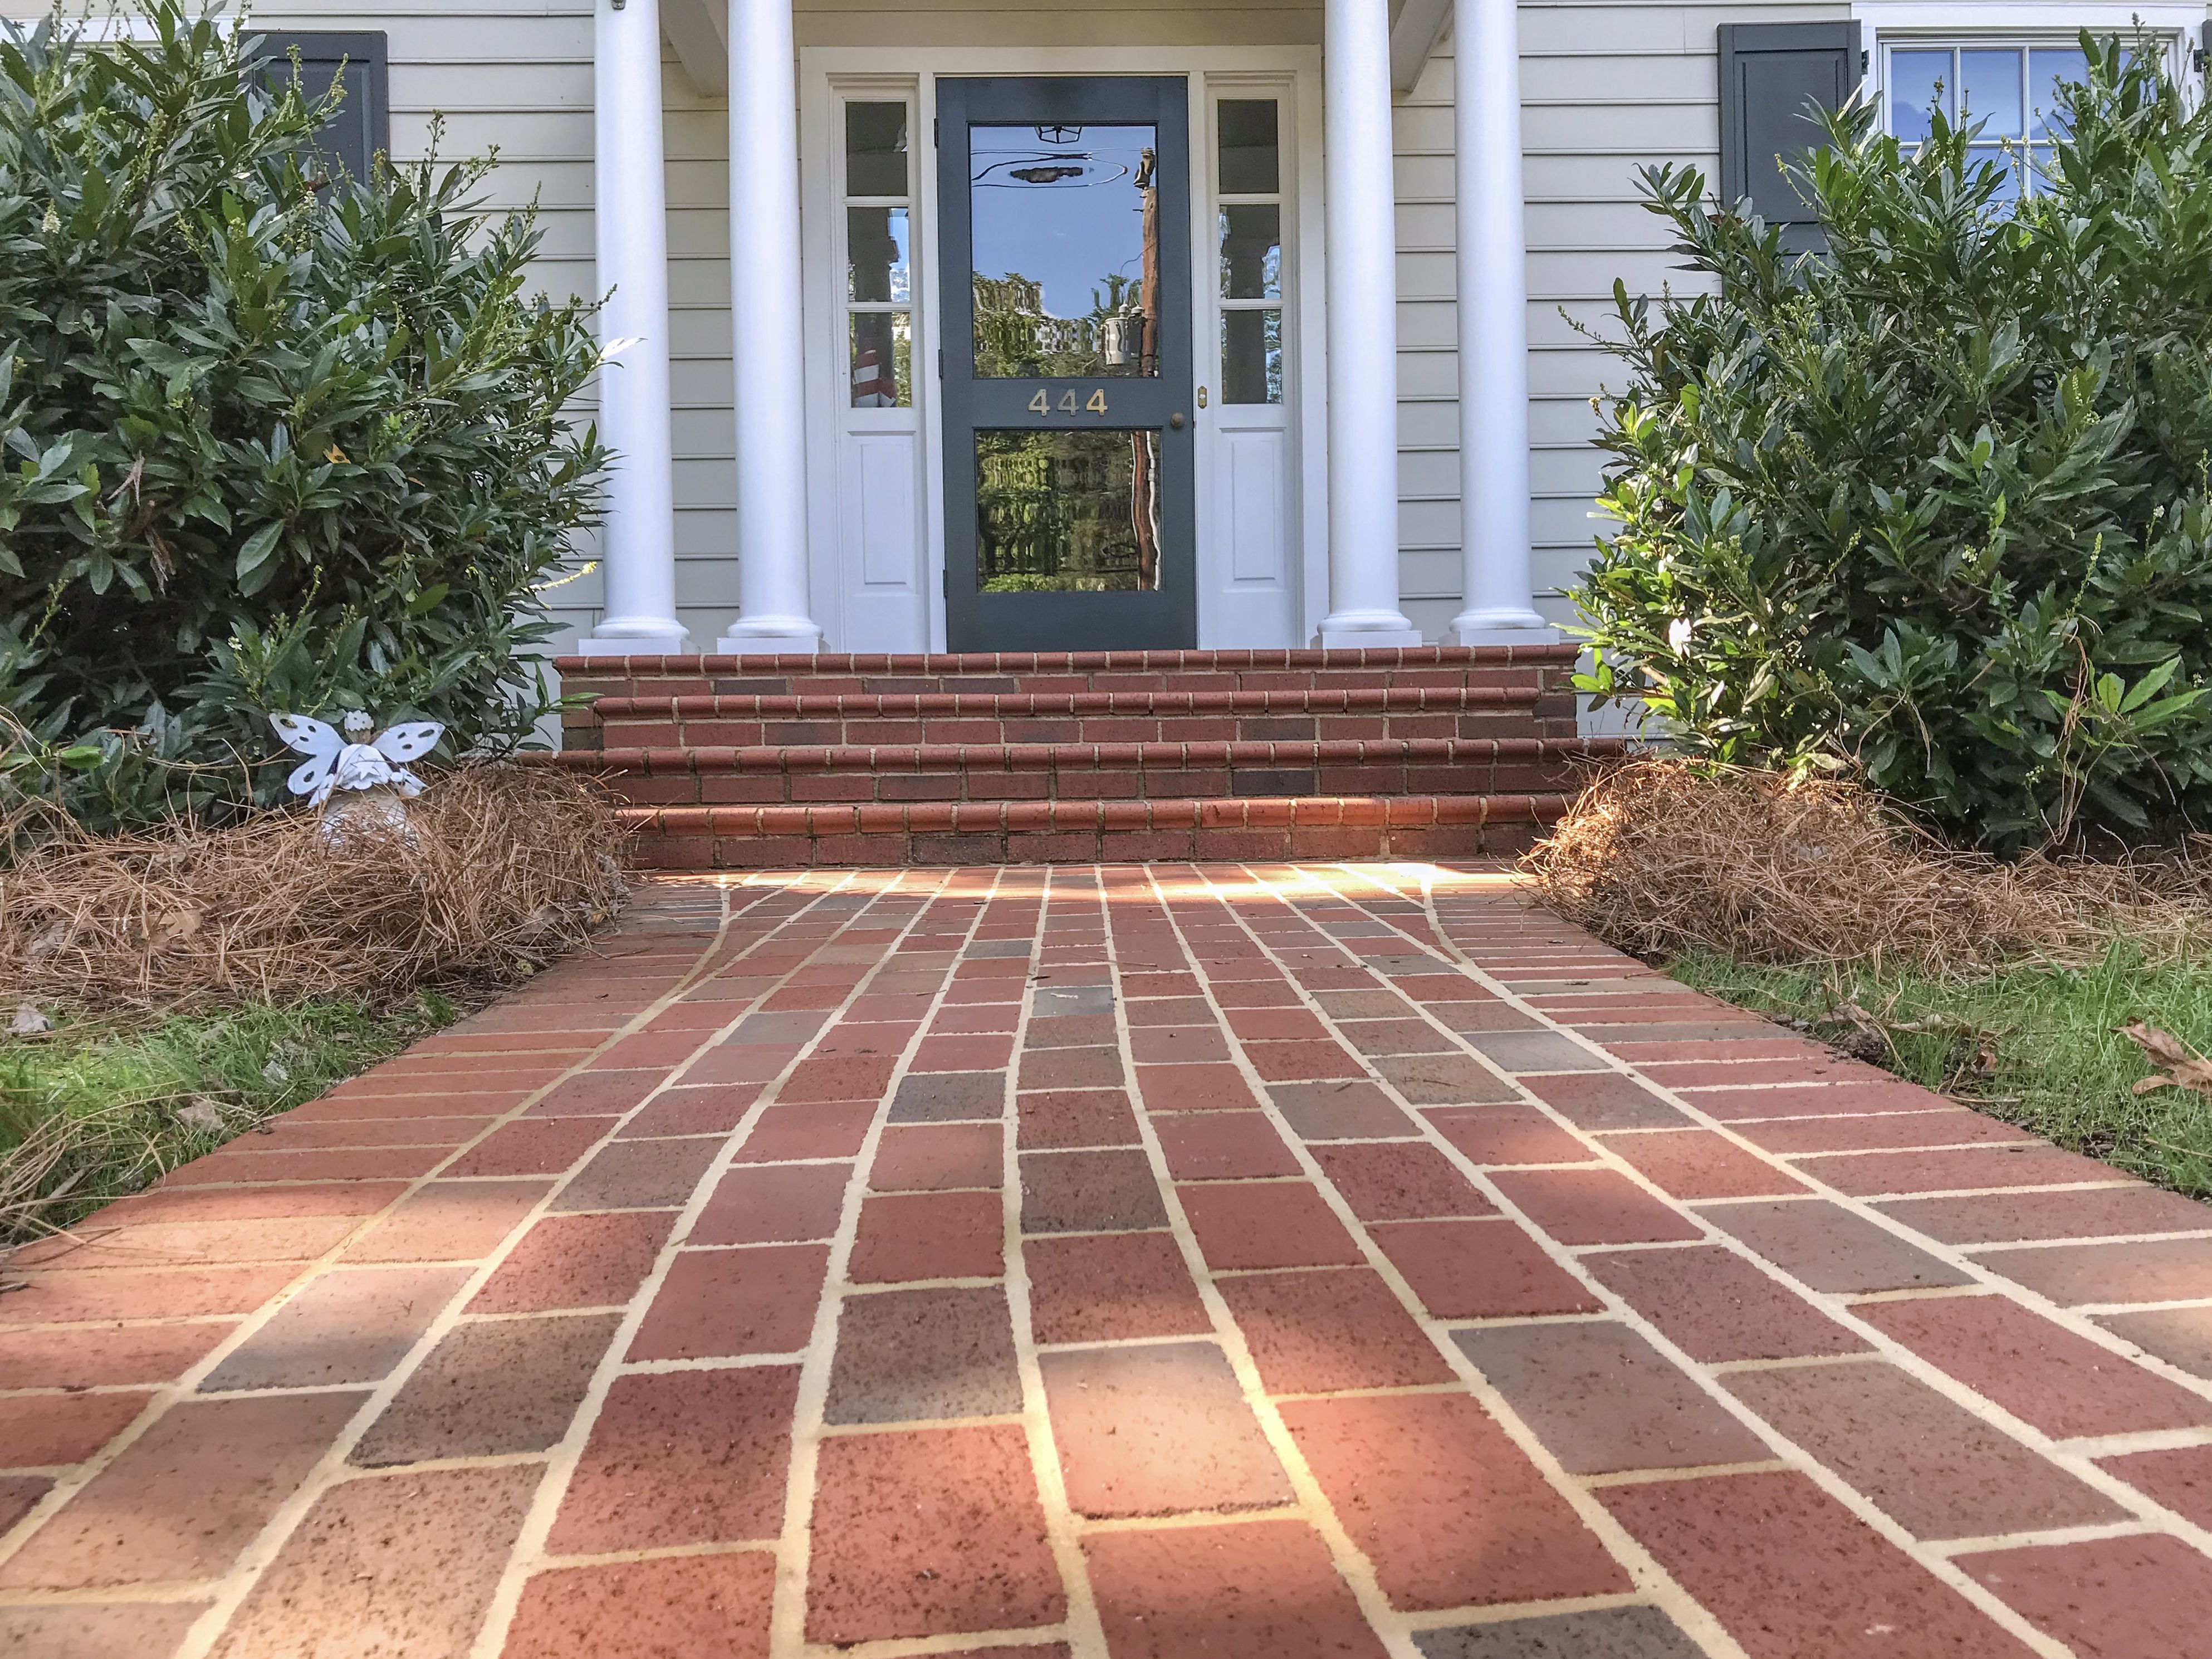 Clean And Formal Right To Your Doorstep With Brick Pavers Shown Pathway Full Range Modular Pavers In Running Bond Pattern Paver Walkway Walkway Brick Pavers